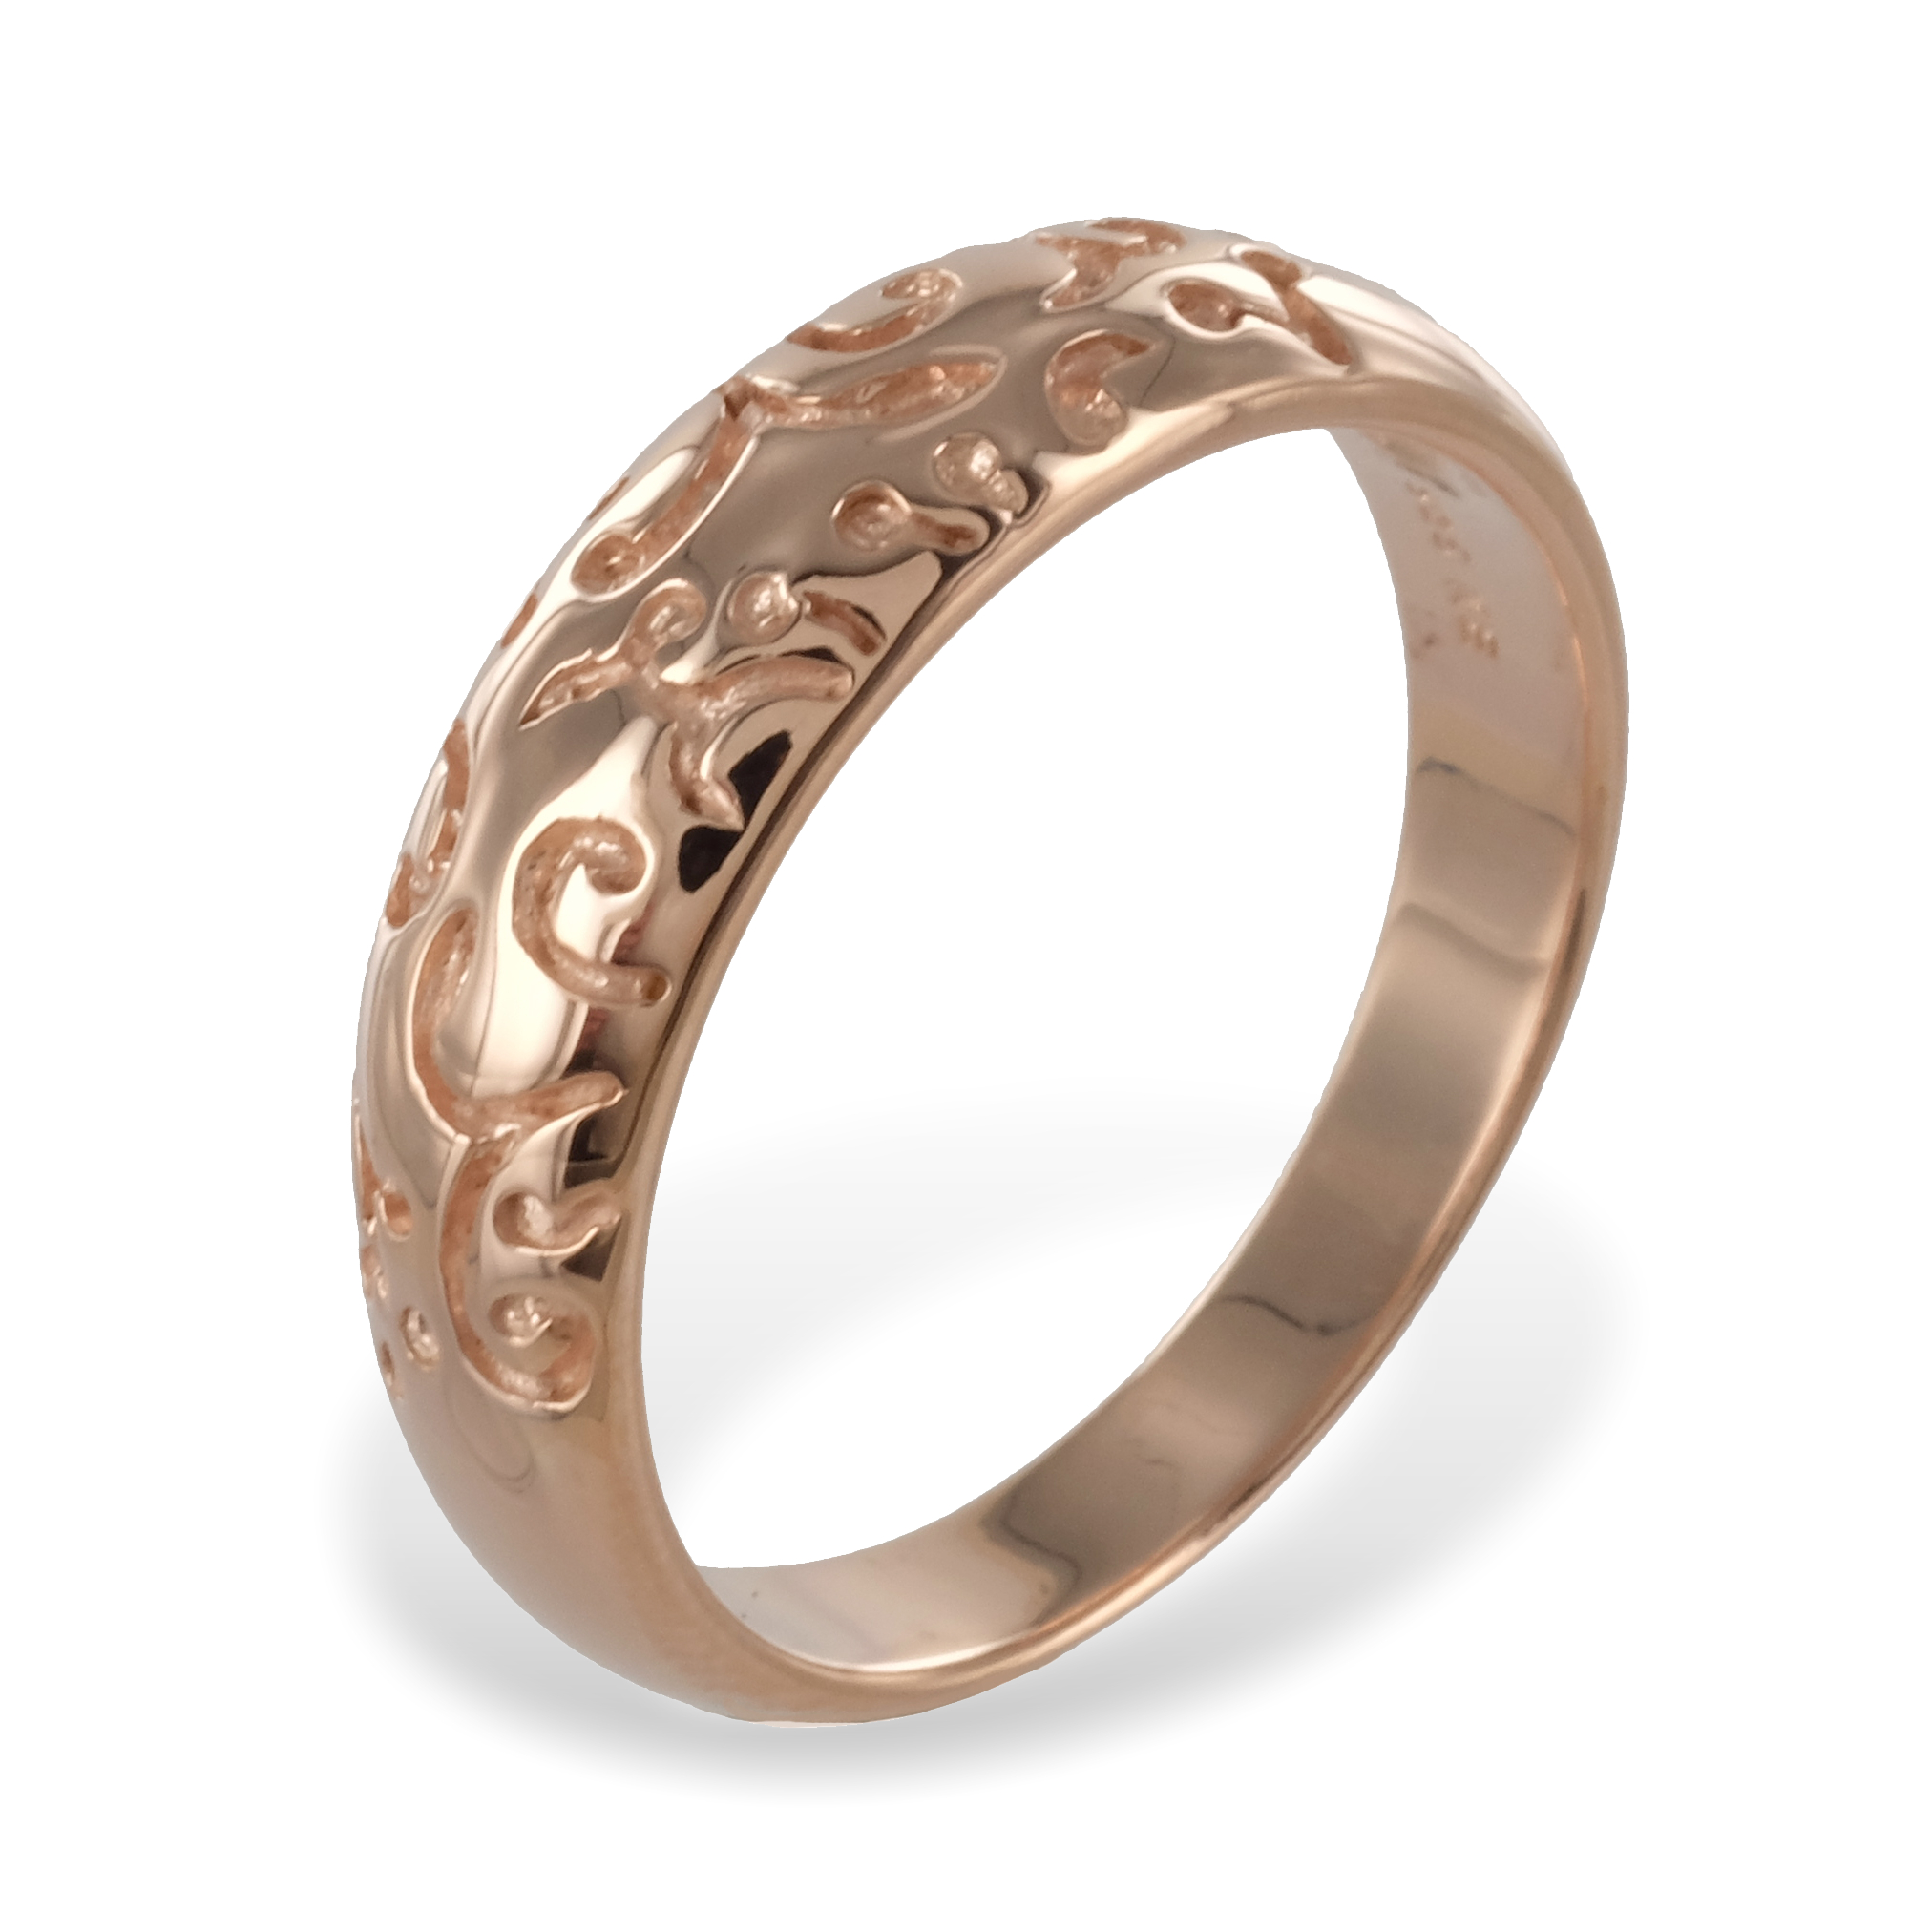 Thats The Ring I Want For My Engagement If